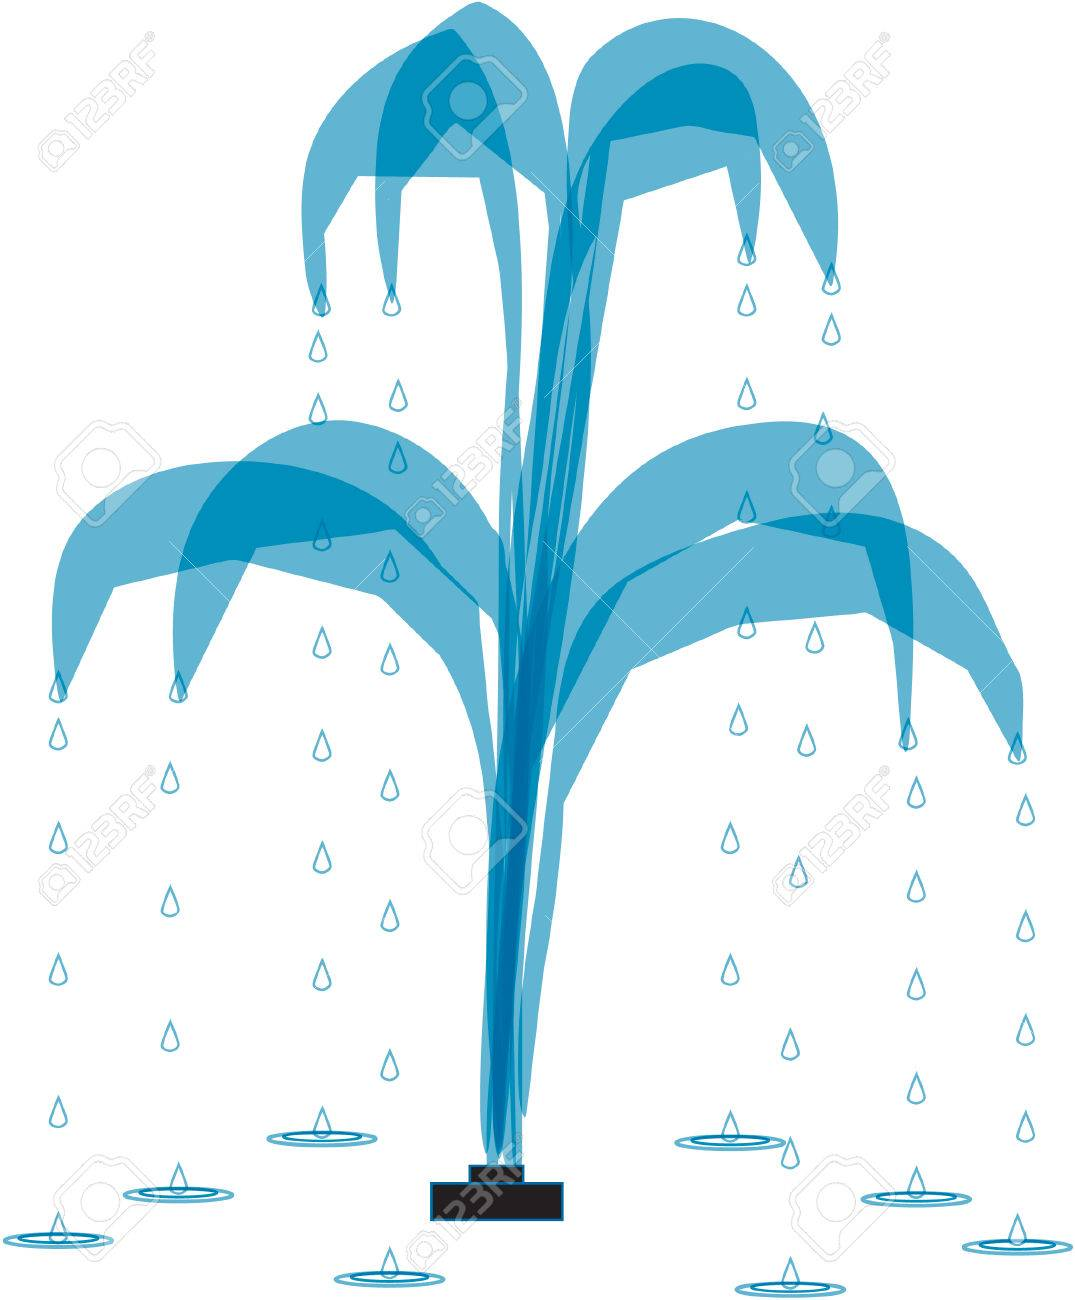 water fountain with four sprayers and droplets royalty free cliparts rh 123rf com water fountain vector free download Cartoon Water Fountain Park